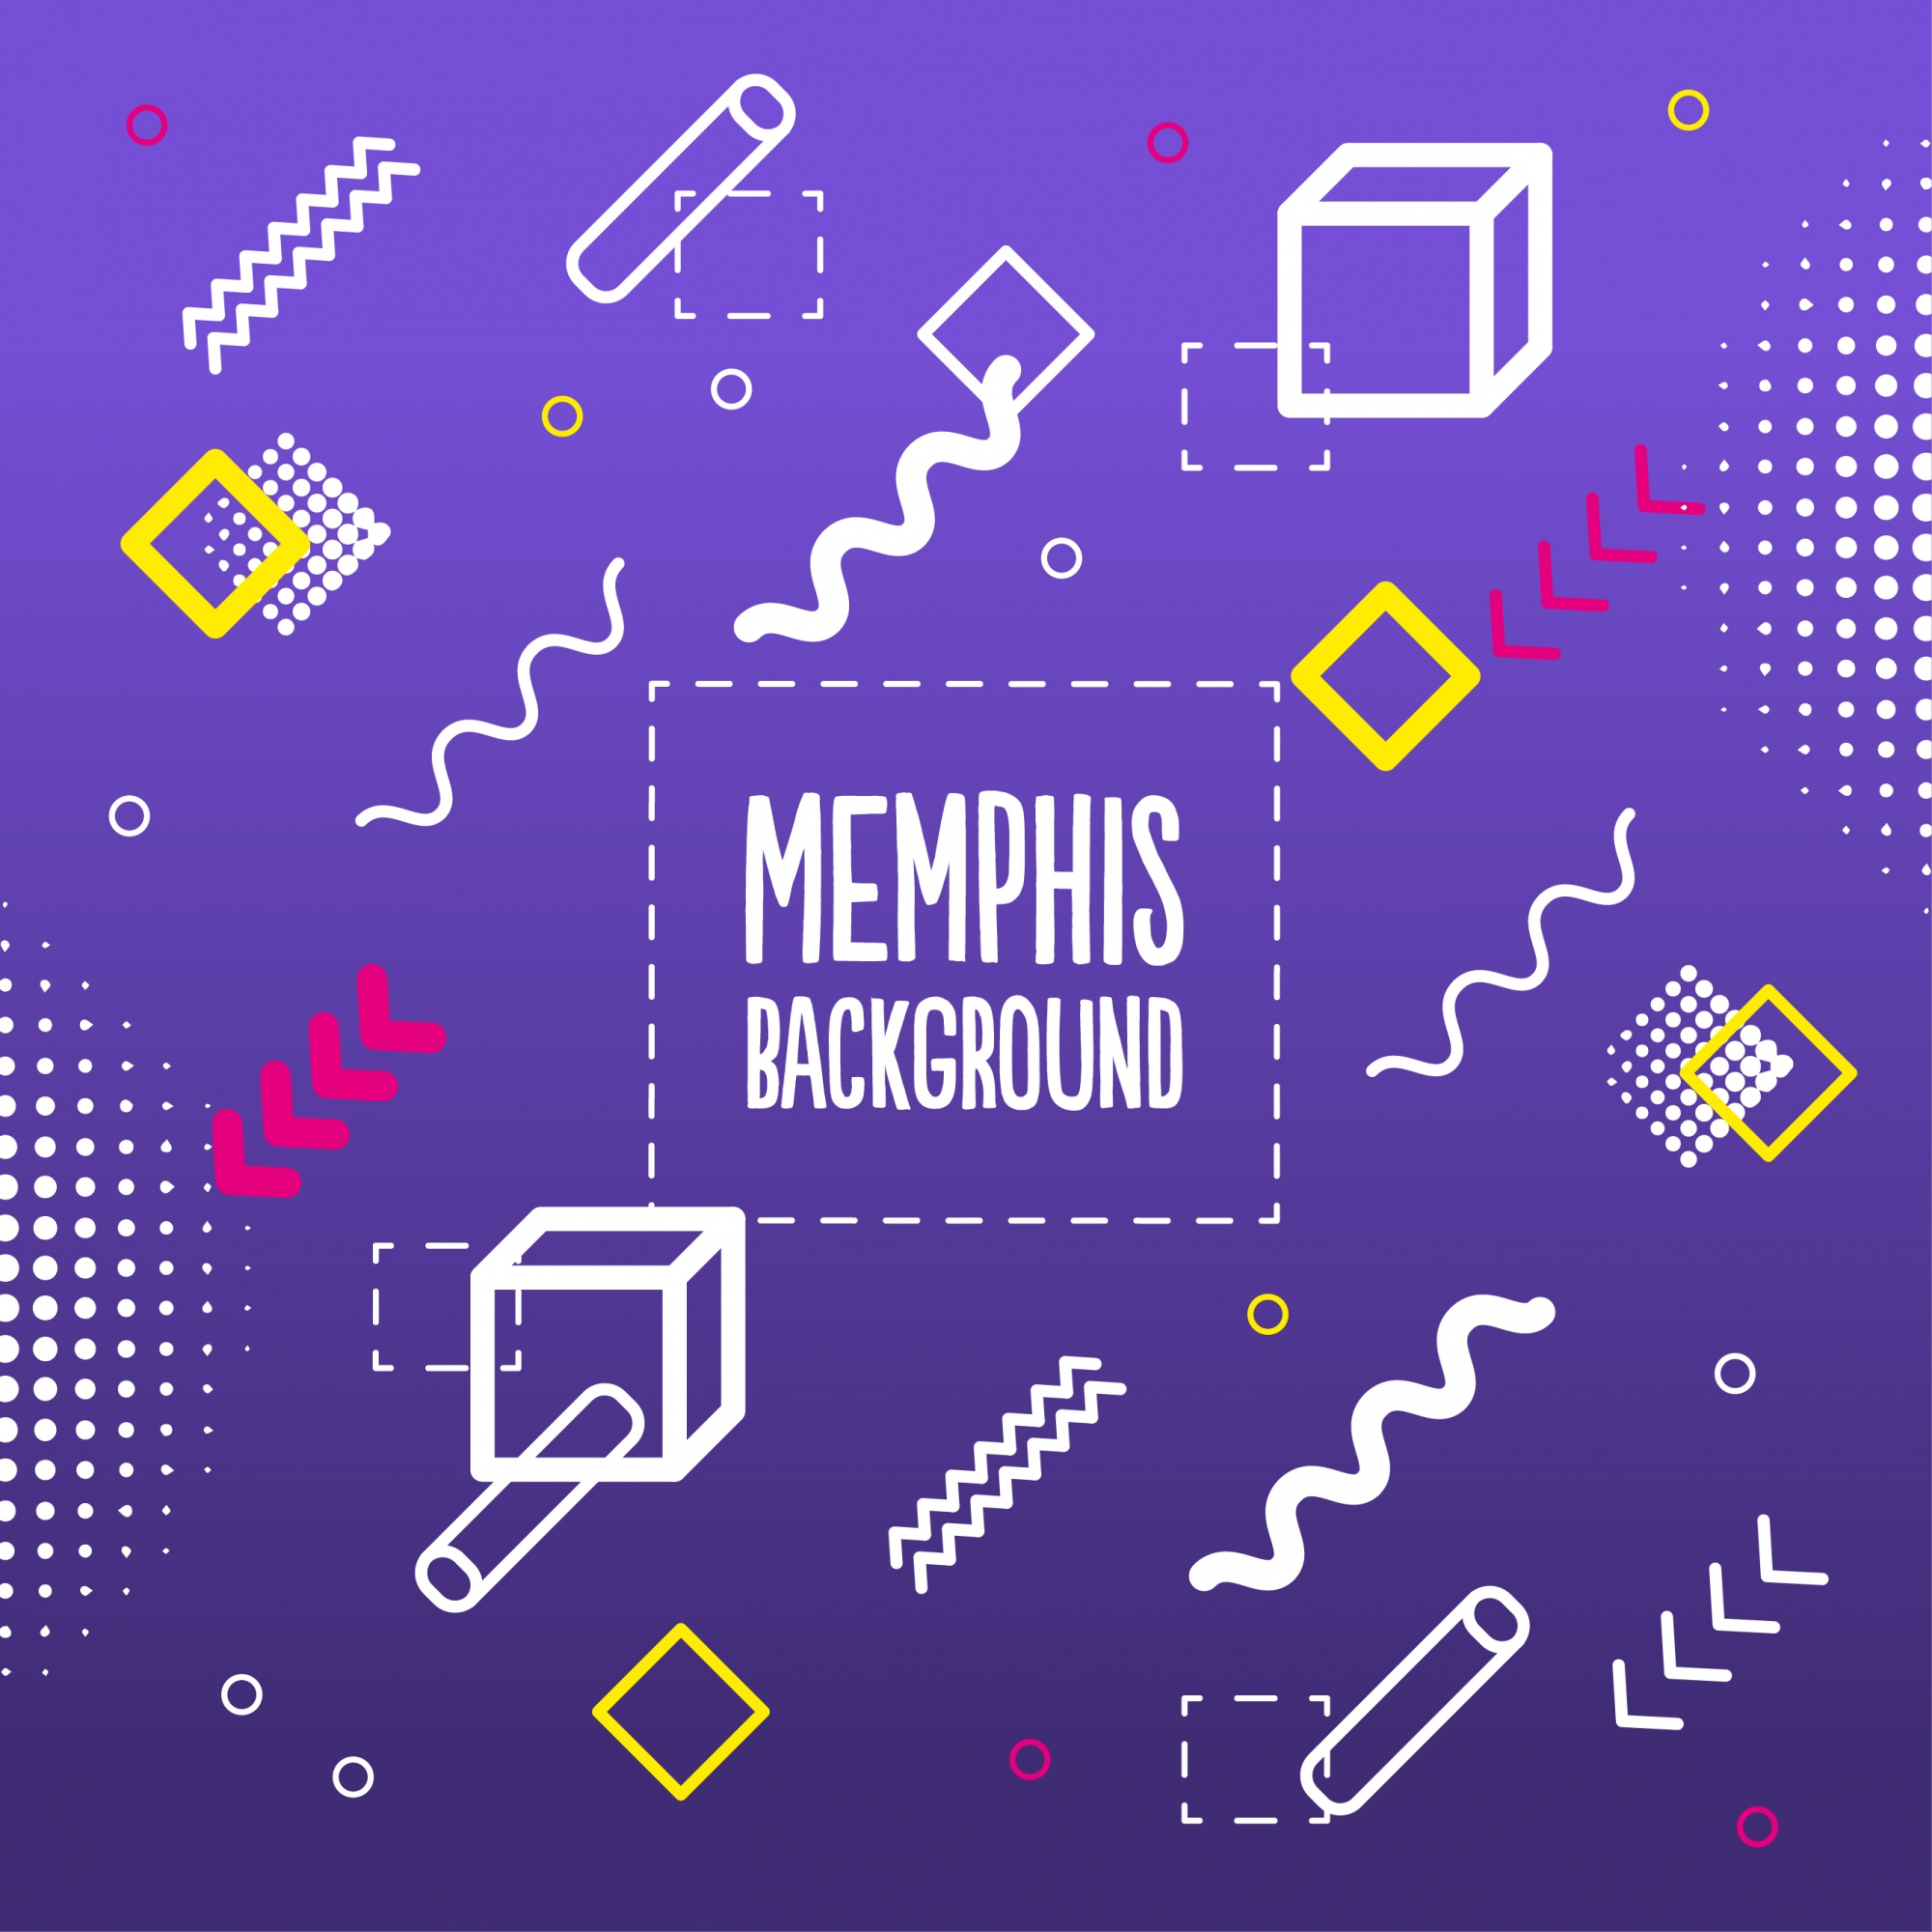 Memphis style background